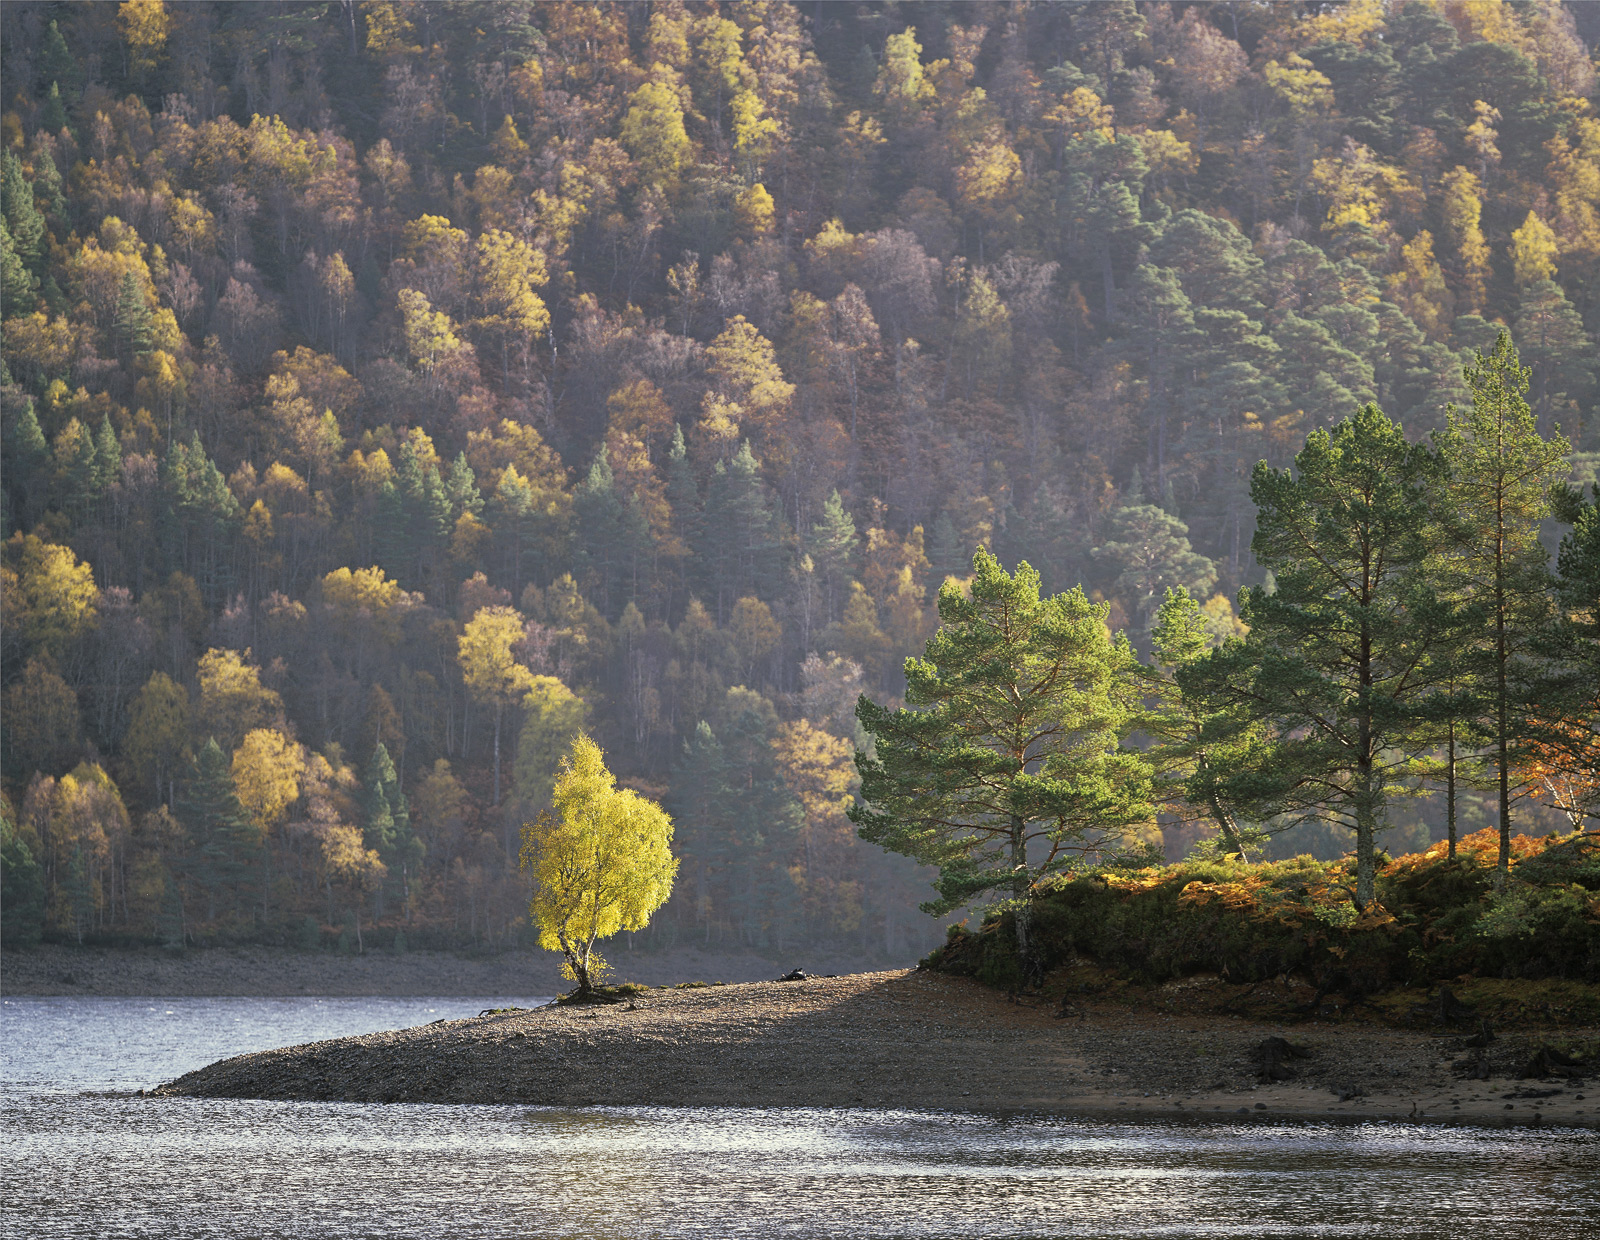 Technicolour Dreamcoat, Glen Affric, Highlands, Scotland, centre stage, shrouded, gold, leaf, birch, scots pine, green , photo